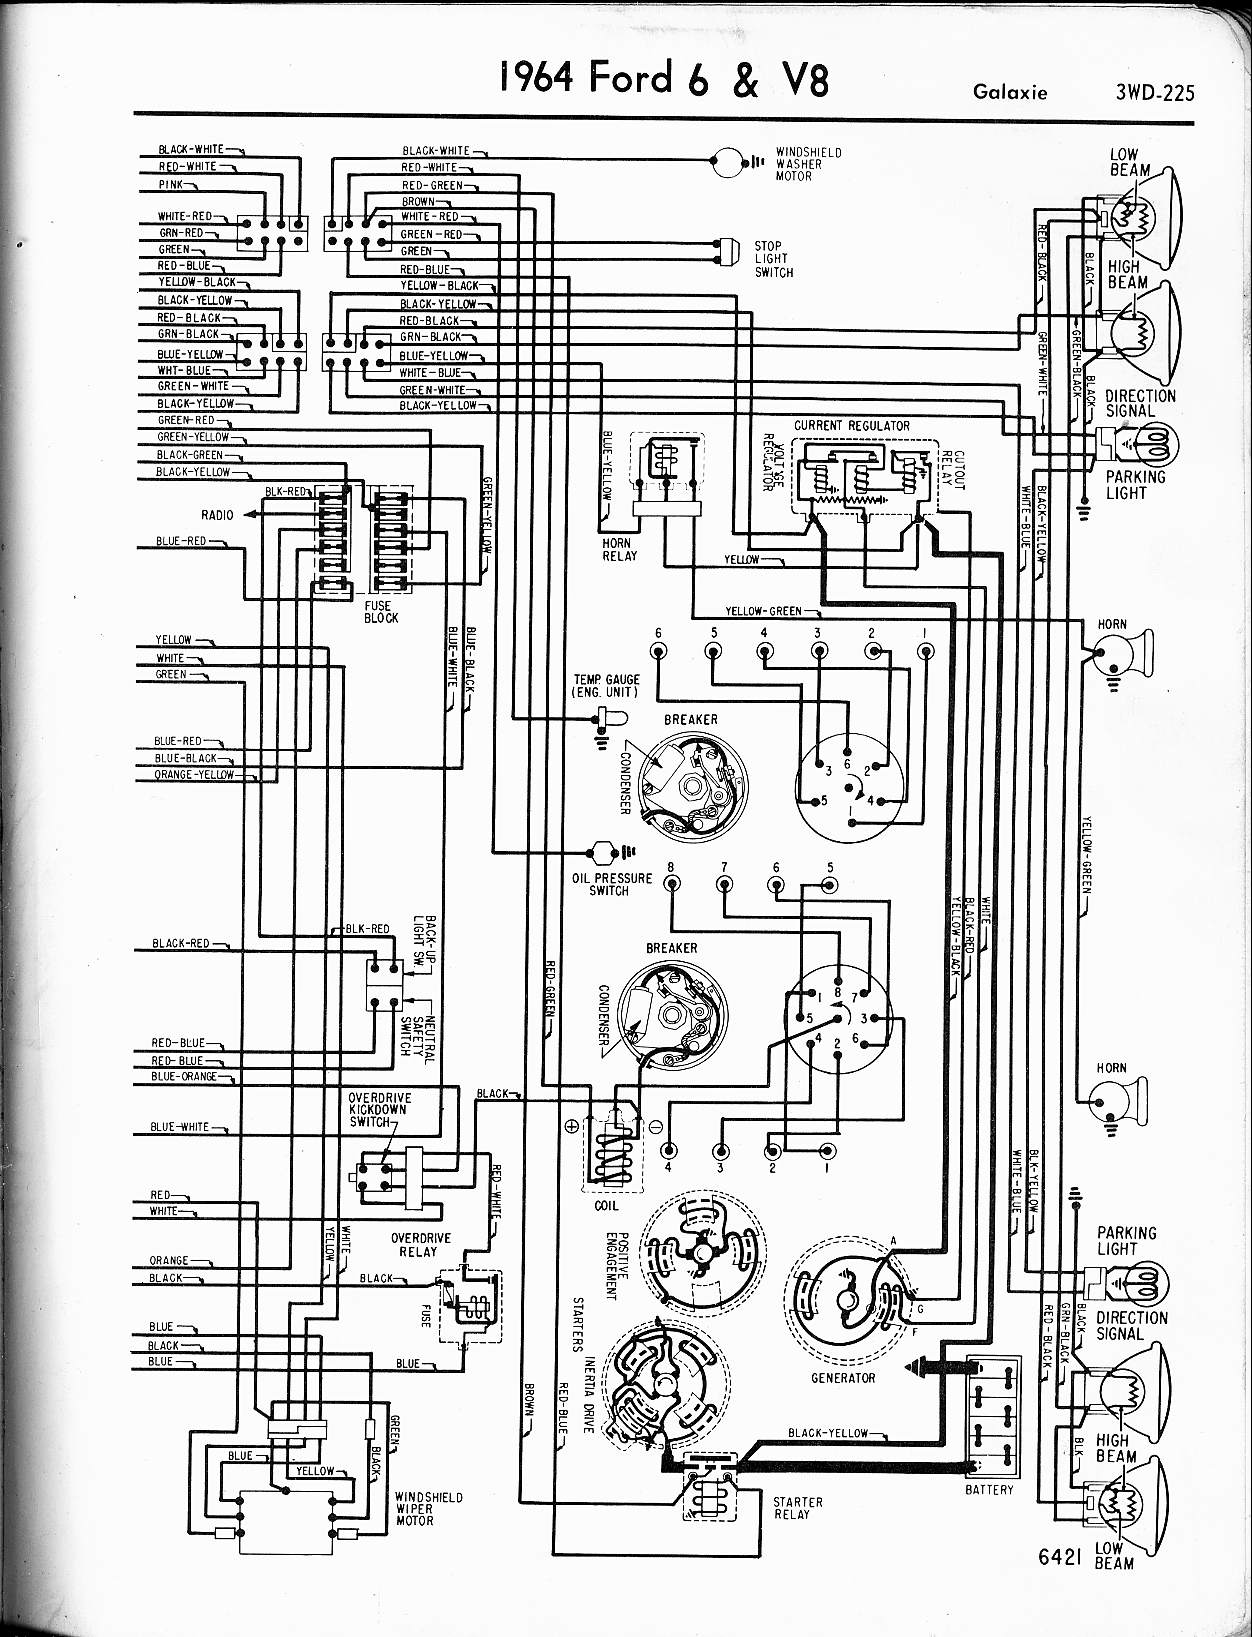 MWire5765 225 57 65 ford wiring diagrams El Camino Girls at fashall.co